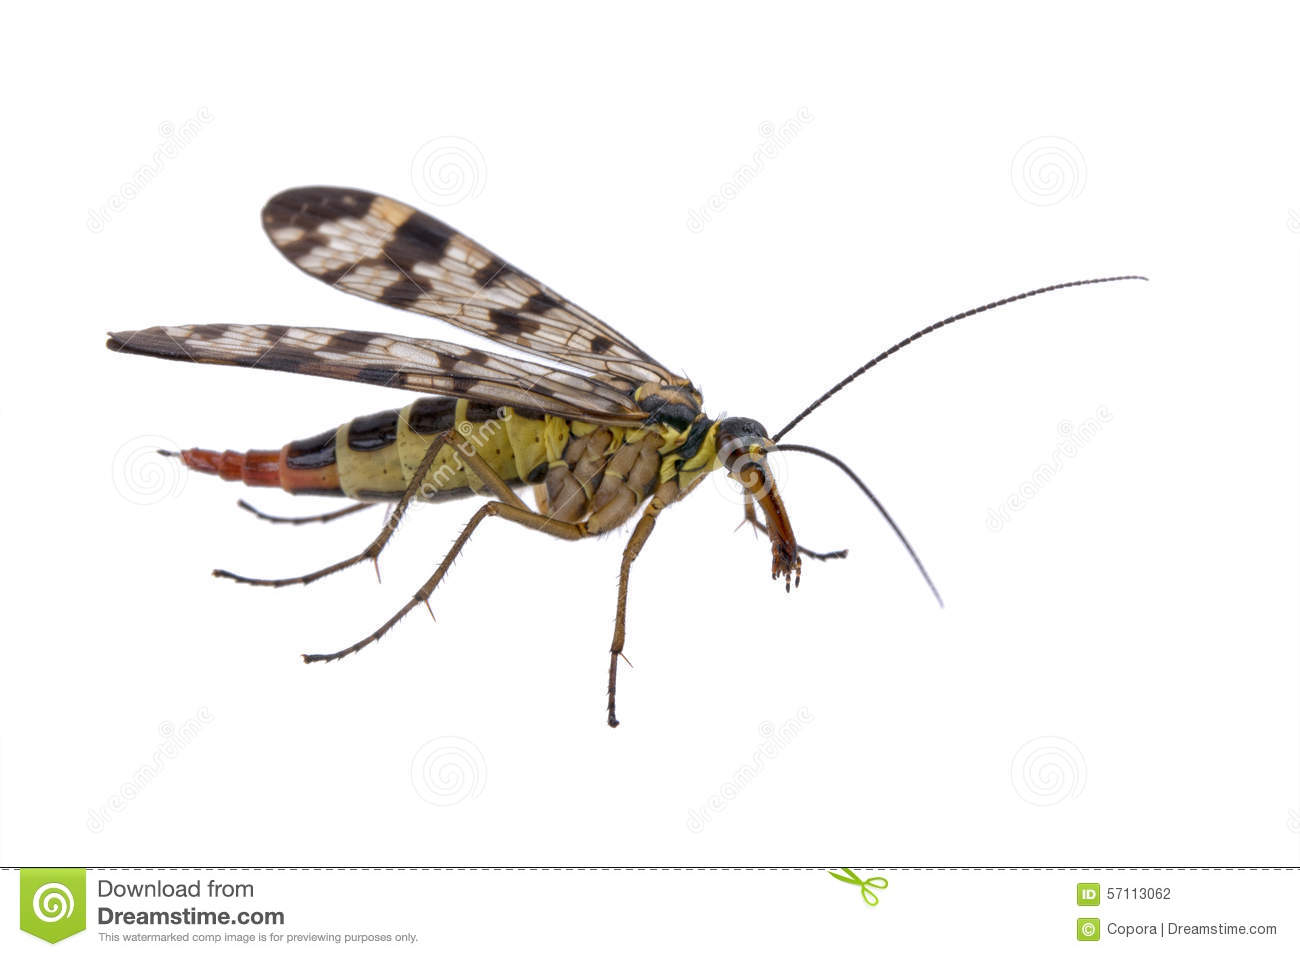 Scorpion Fly From Family Panorpidae On White Background Stock.